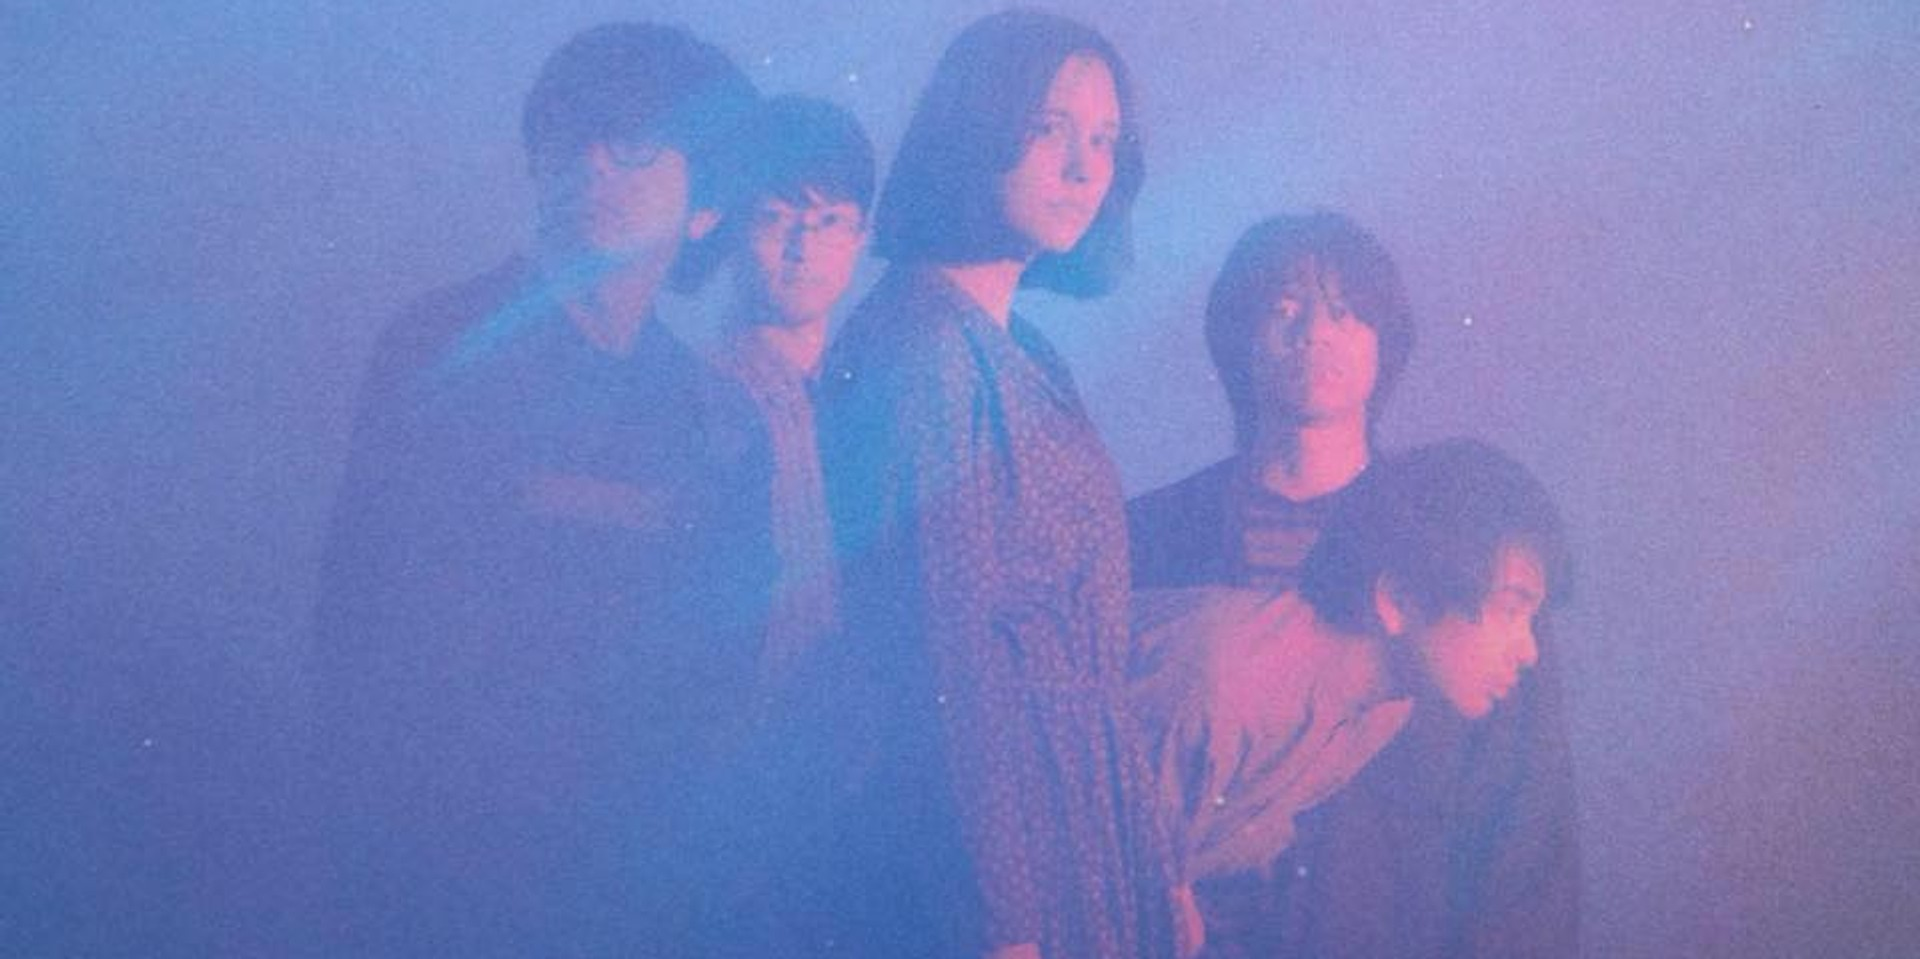 For Tracy Hyde's New Young City: A track-by-track guide